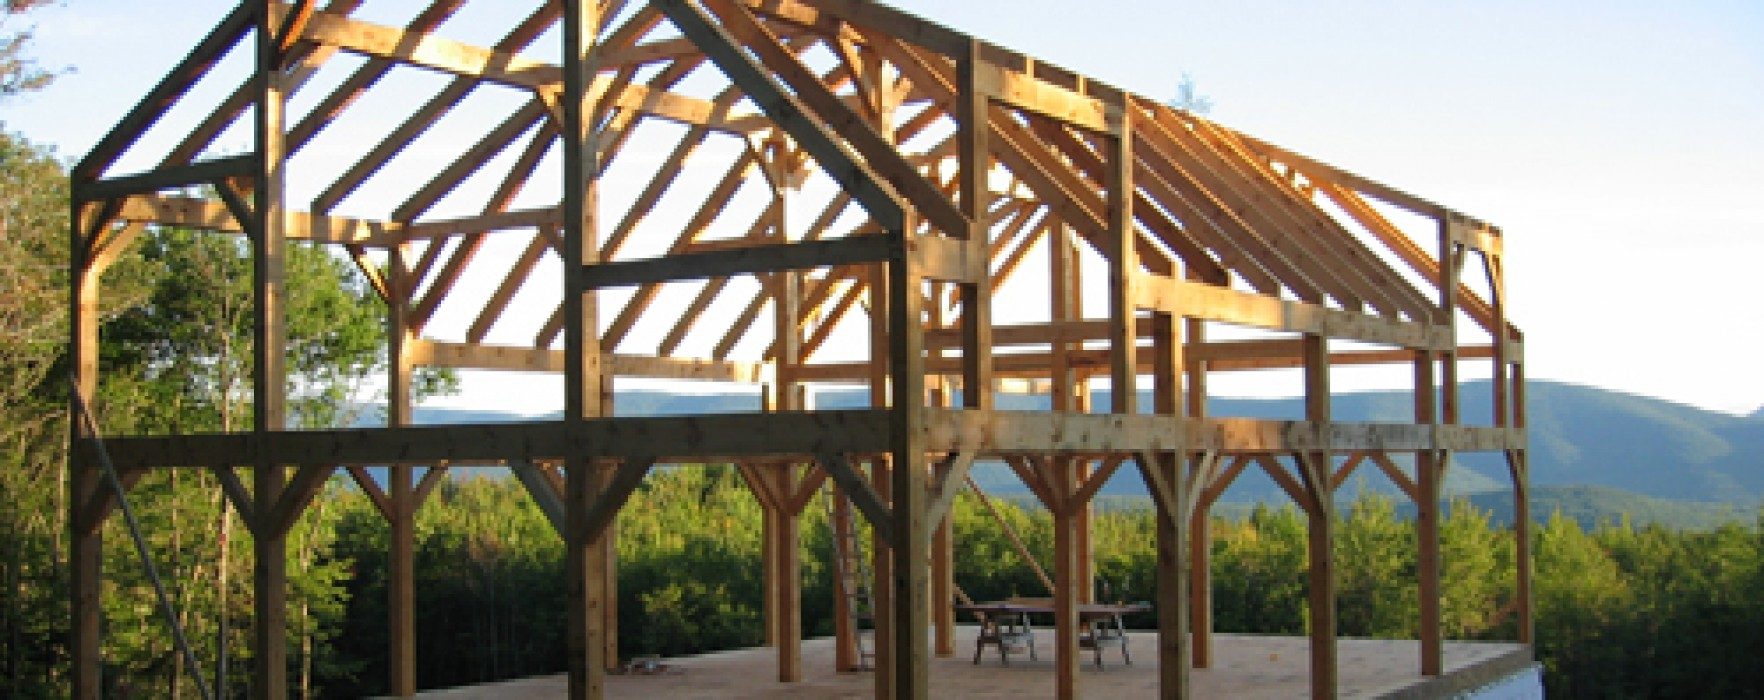 CASE DI LEGNO TIMBER FRAME